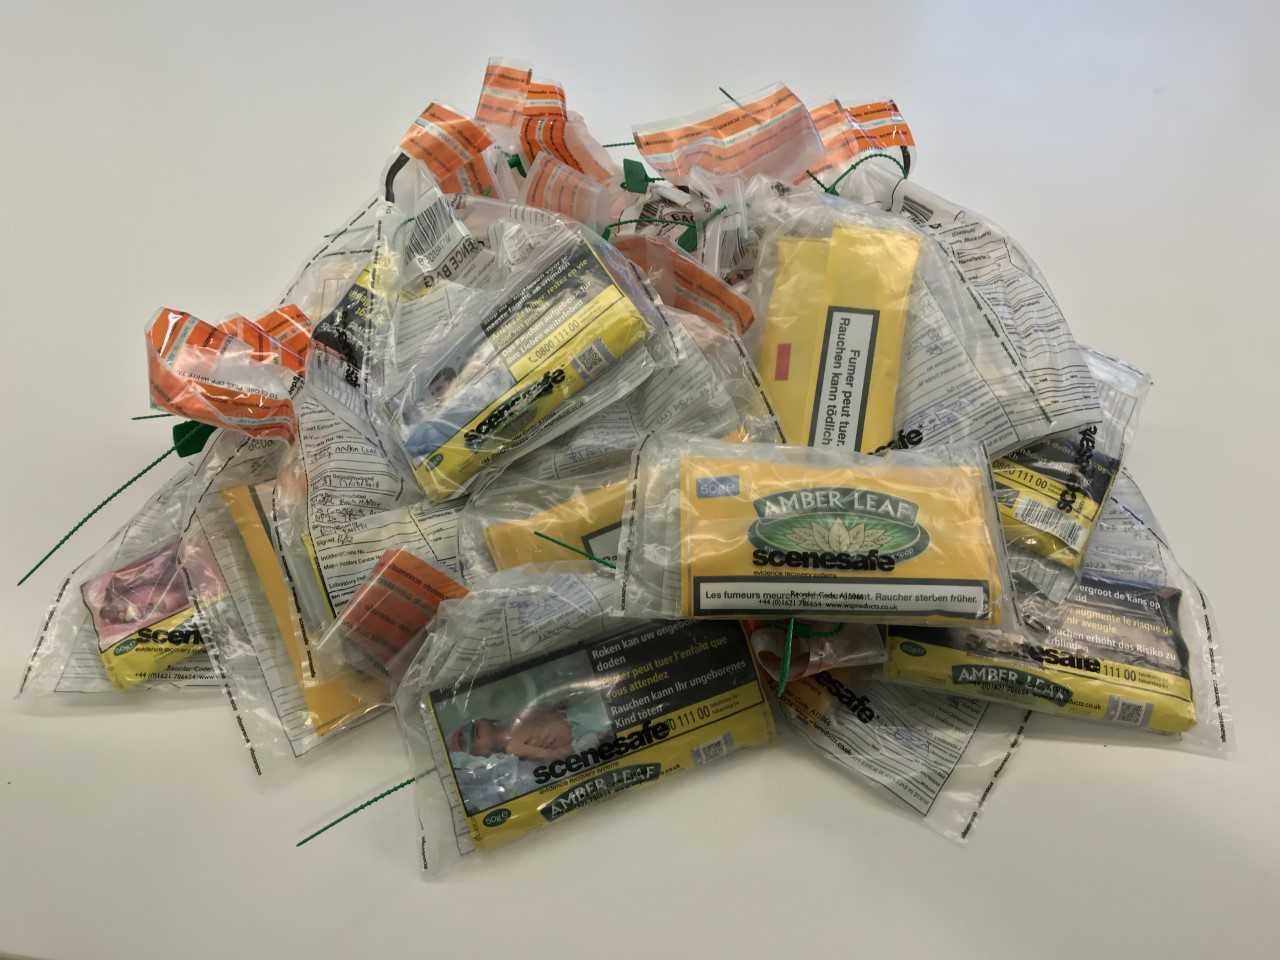 Illegal tobacco seized.